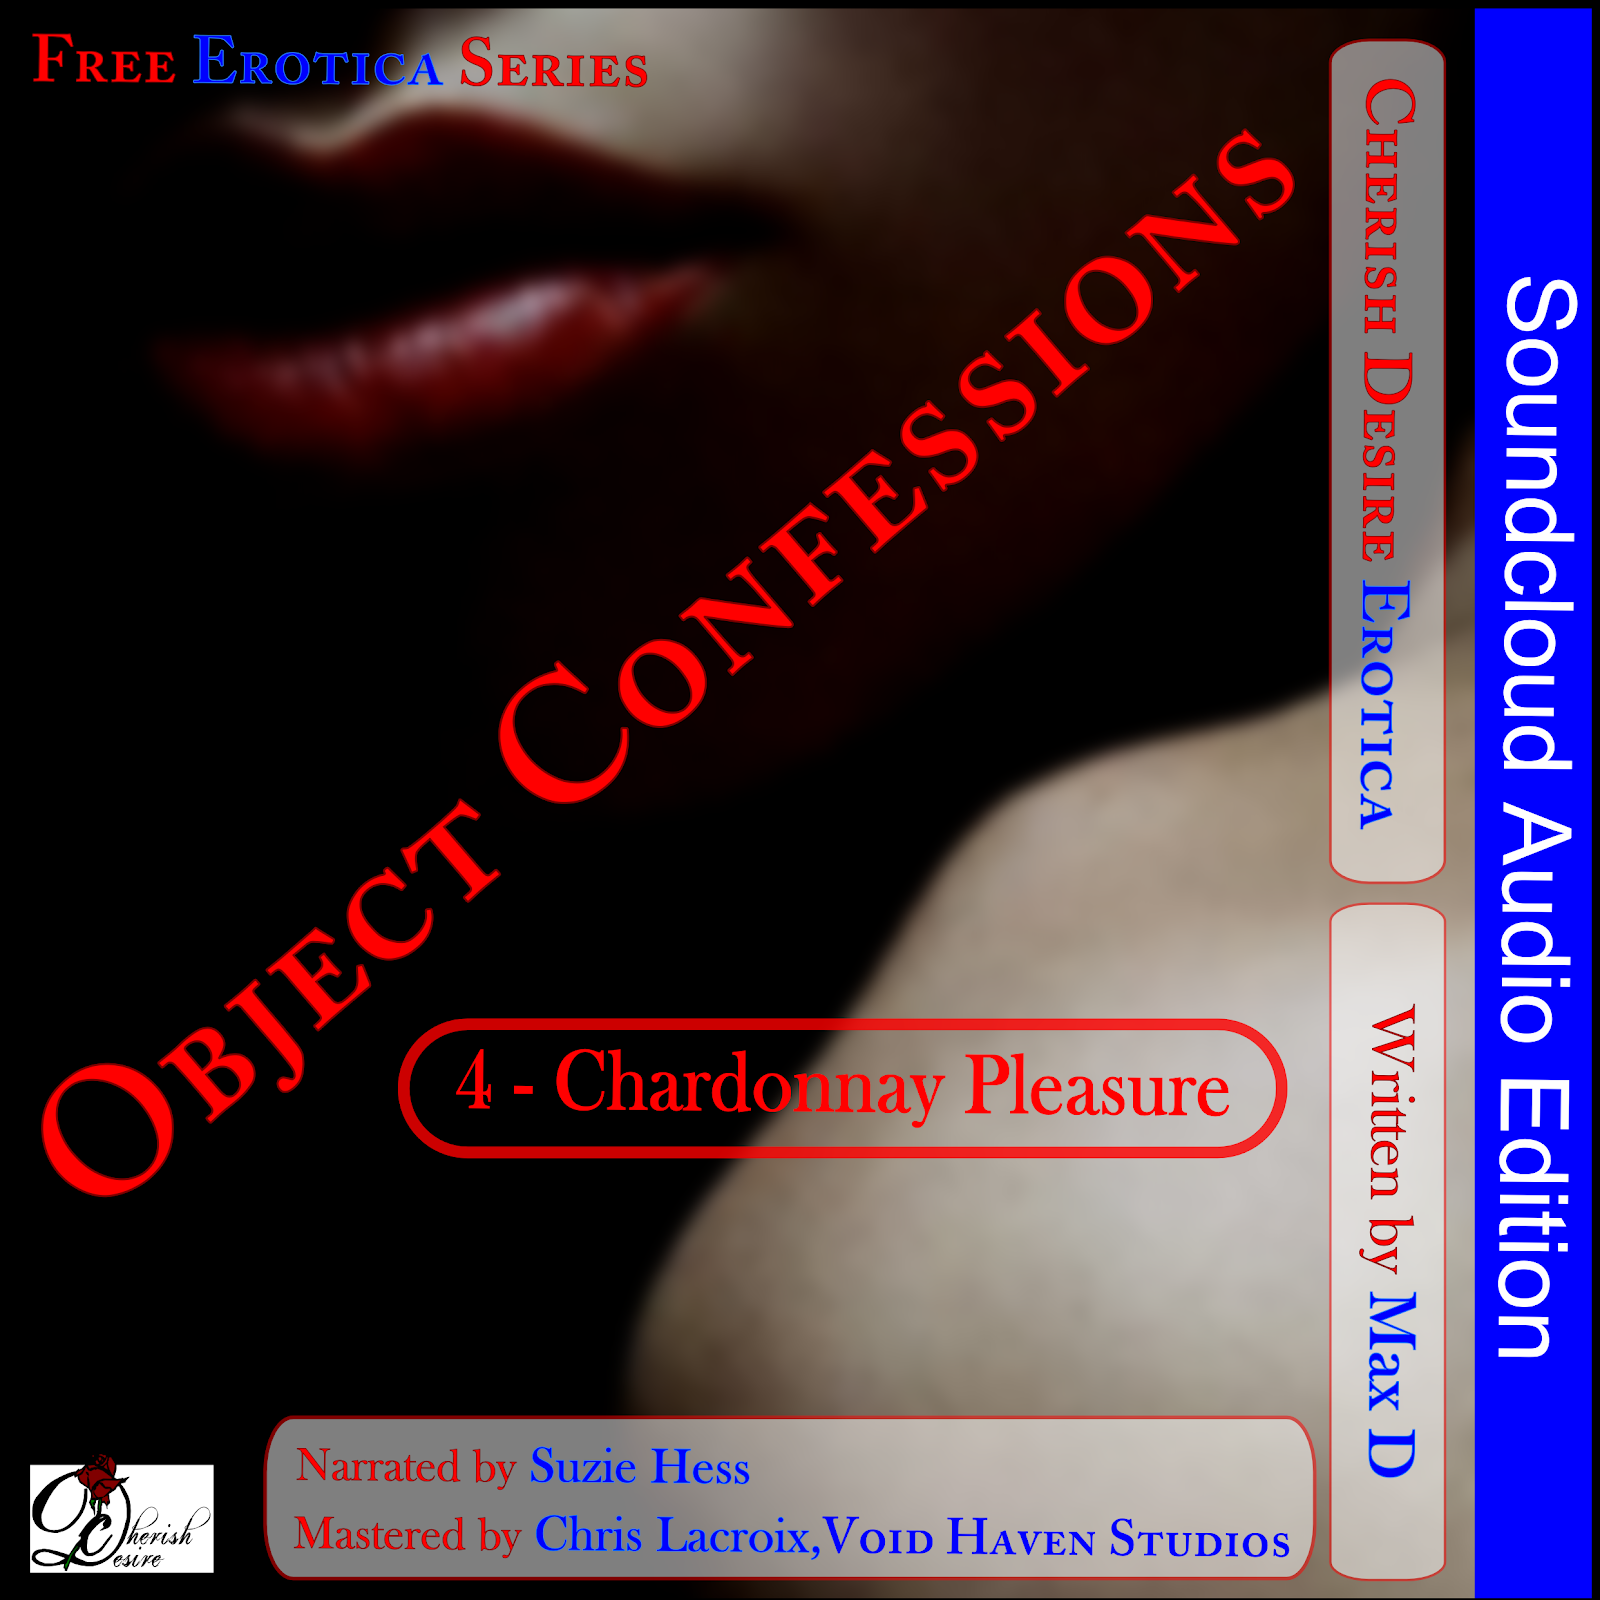 Cherish Desire: Very Dirty Stories Soundcloud Free Erotica Audio Series: Object Confessions 4: Chardonnay Pleasure, Max D, erotica